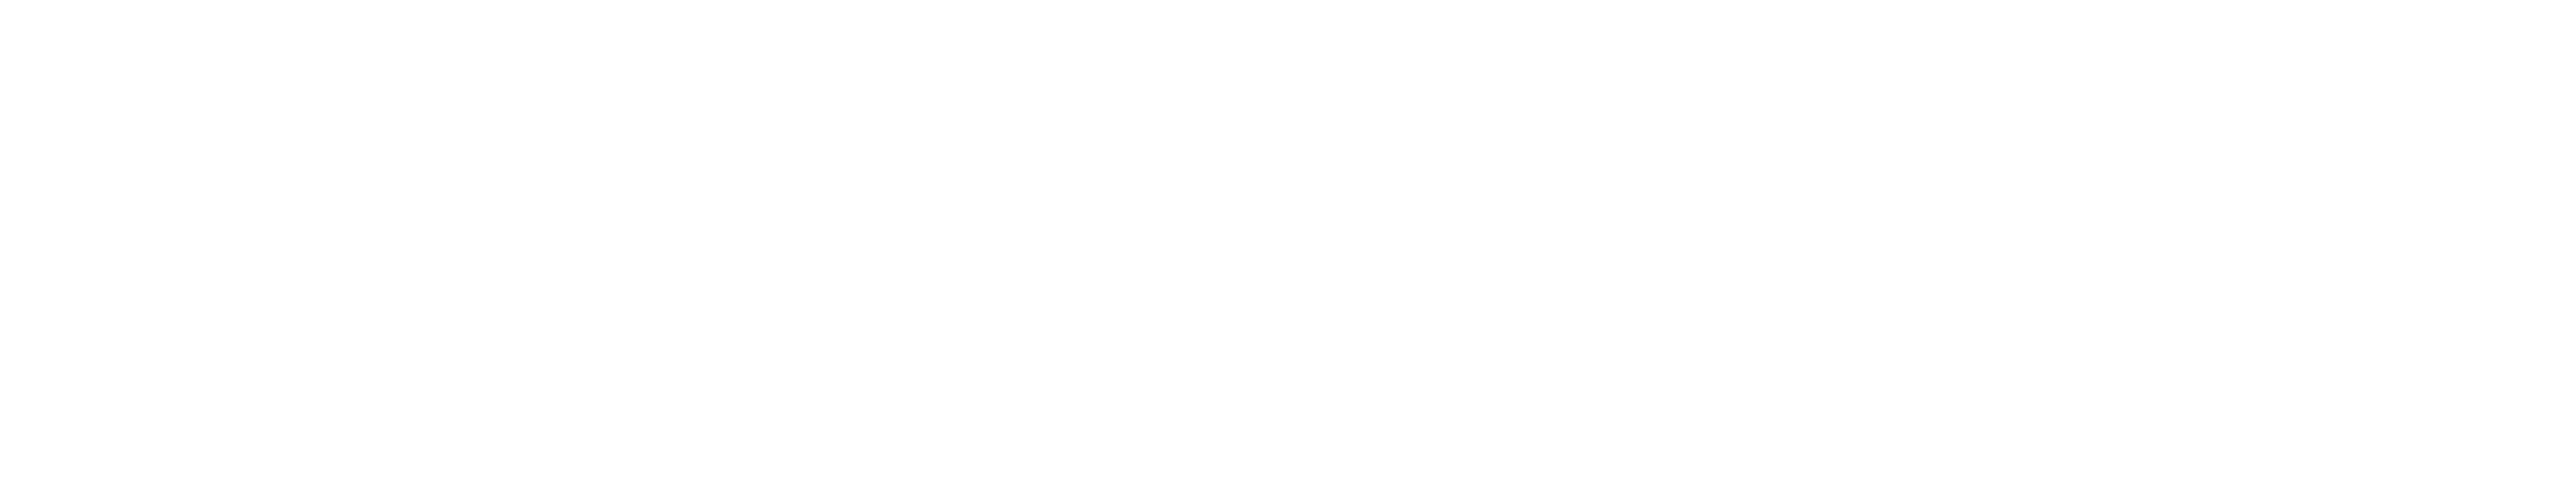 Environmental Protection Authority